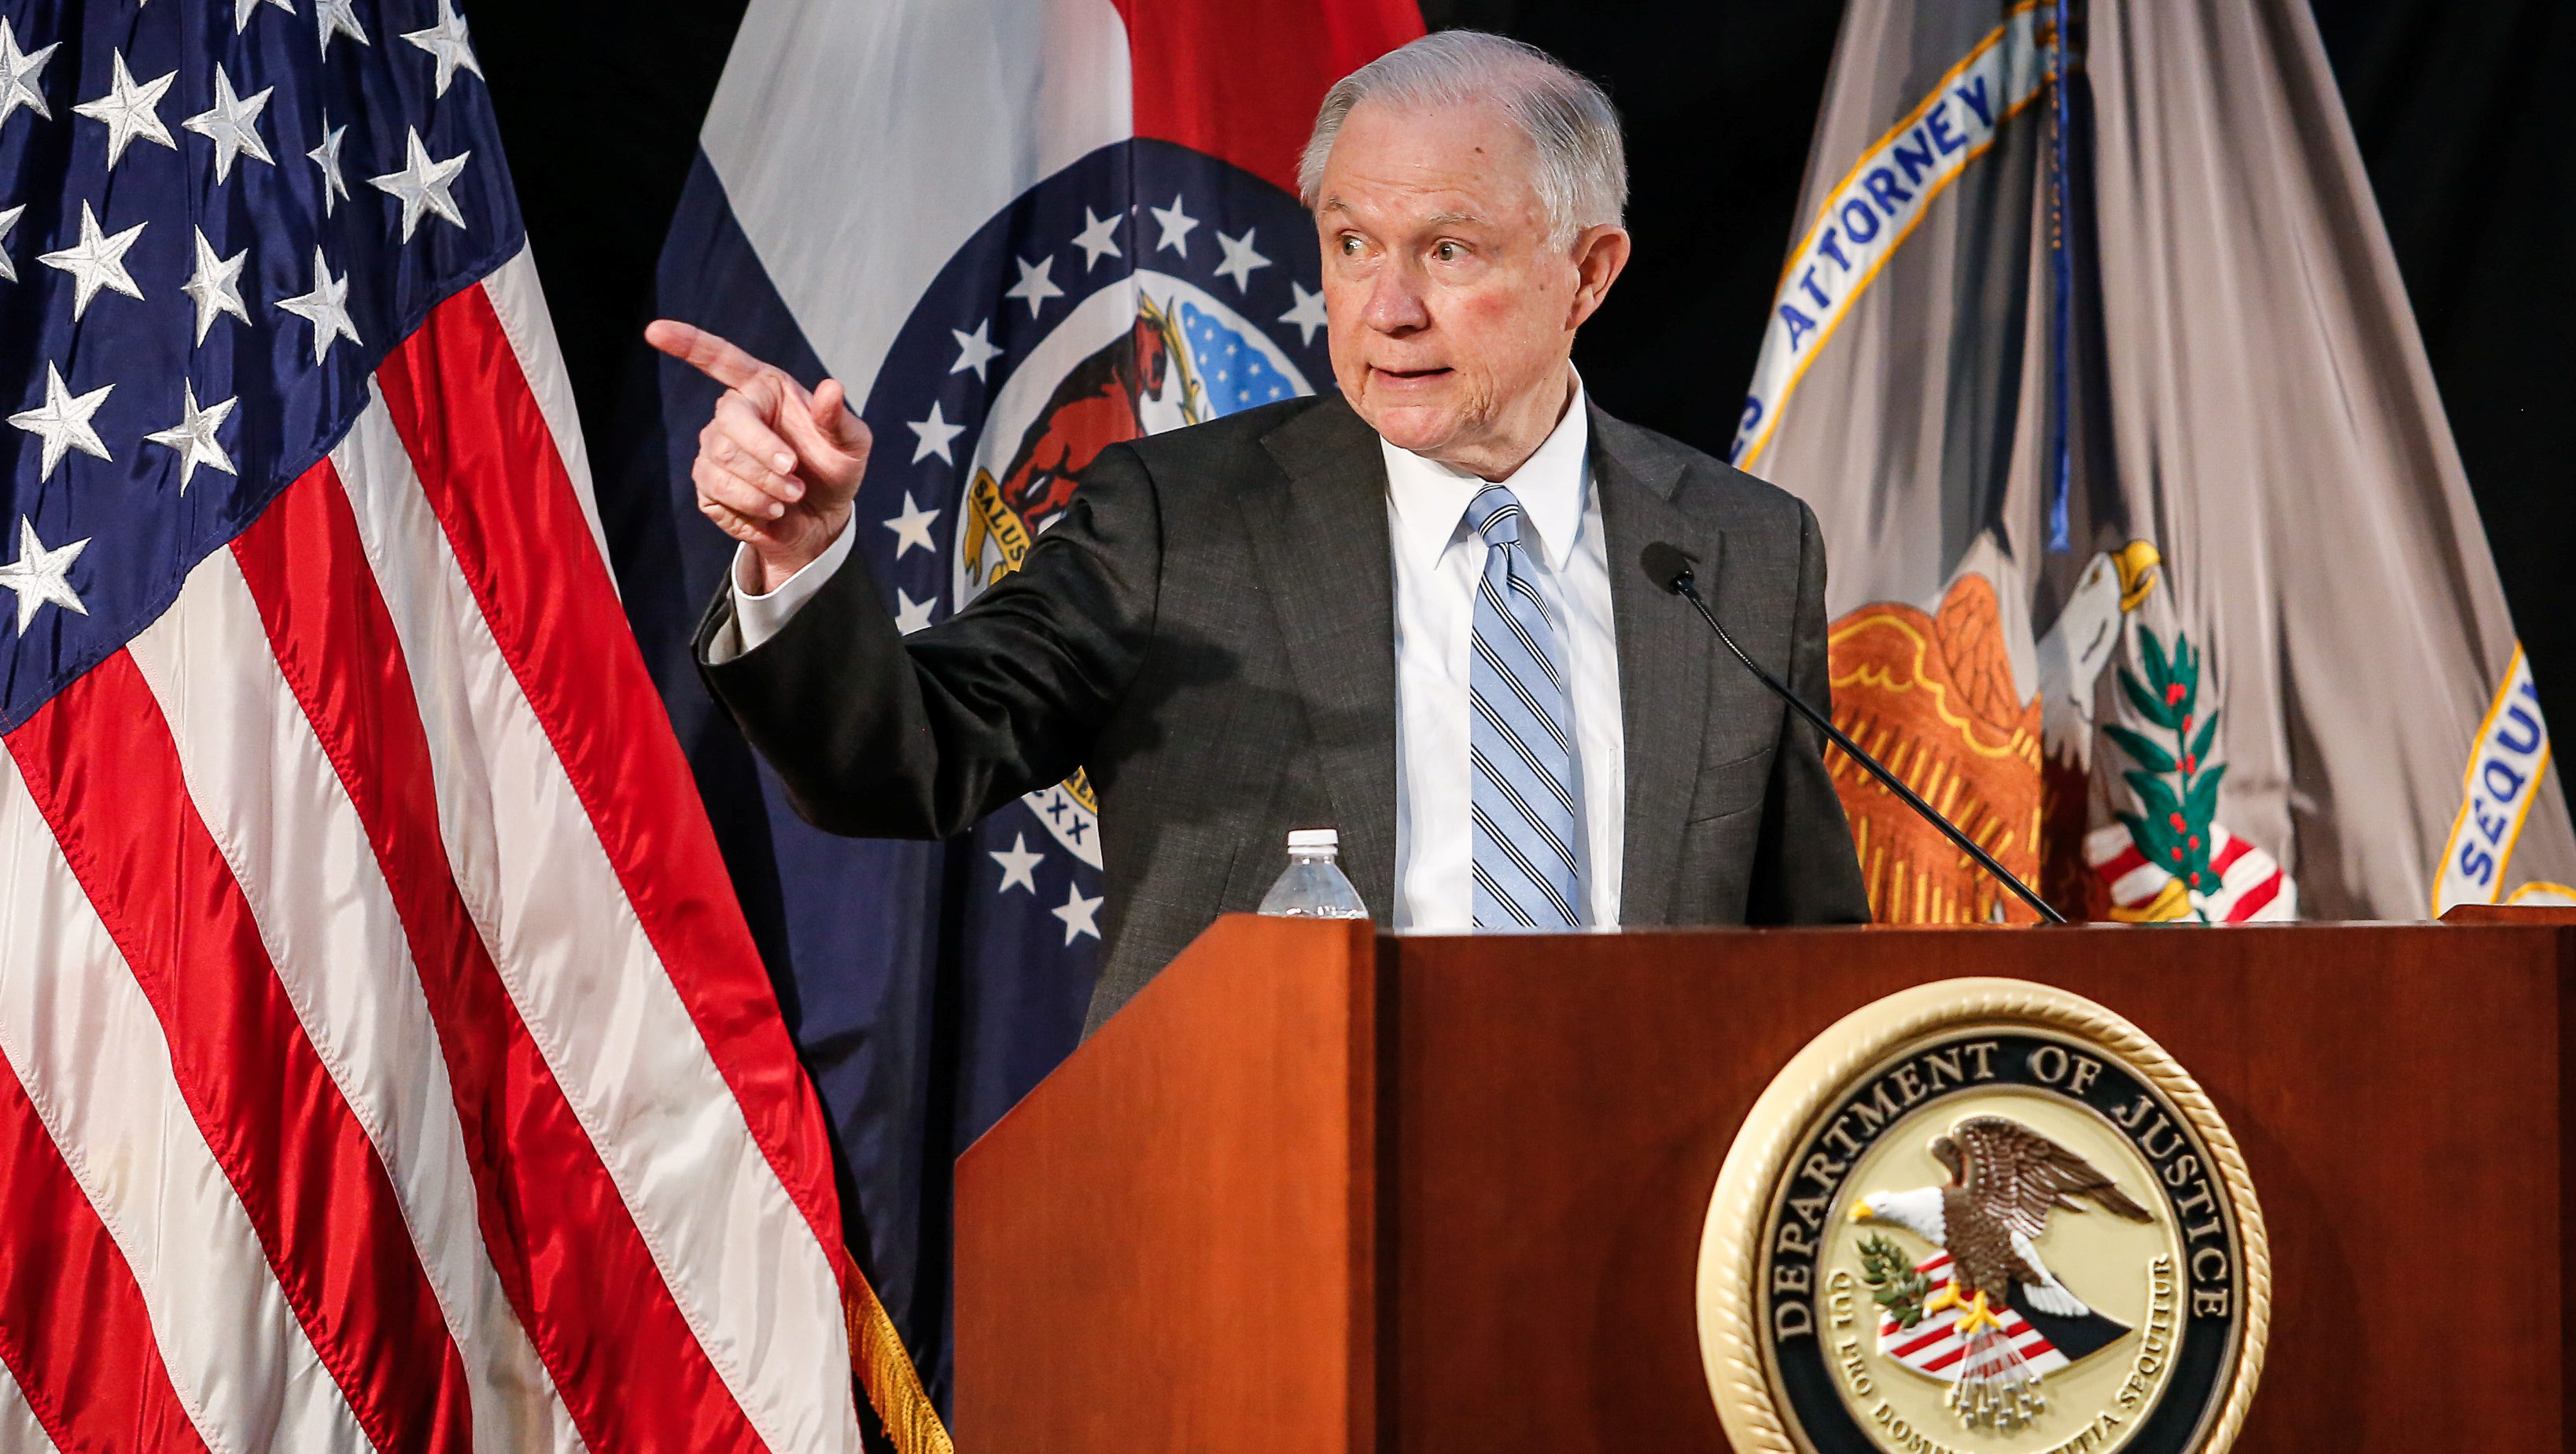 U.S. Attorney General Jeff Sessions speaks to law enforcement officers at the Thomas Eagleton U.S. Courthouse in St. Louis Missouri, U.S. March 31, 2017.  REUTERS/Lawrence Bryant - RTX33LAI